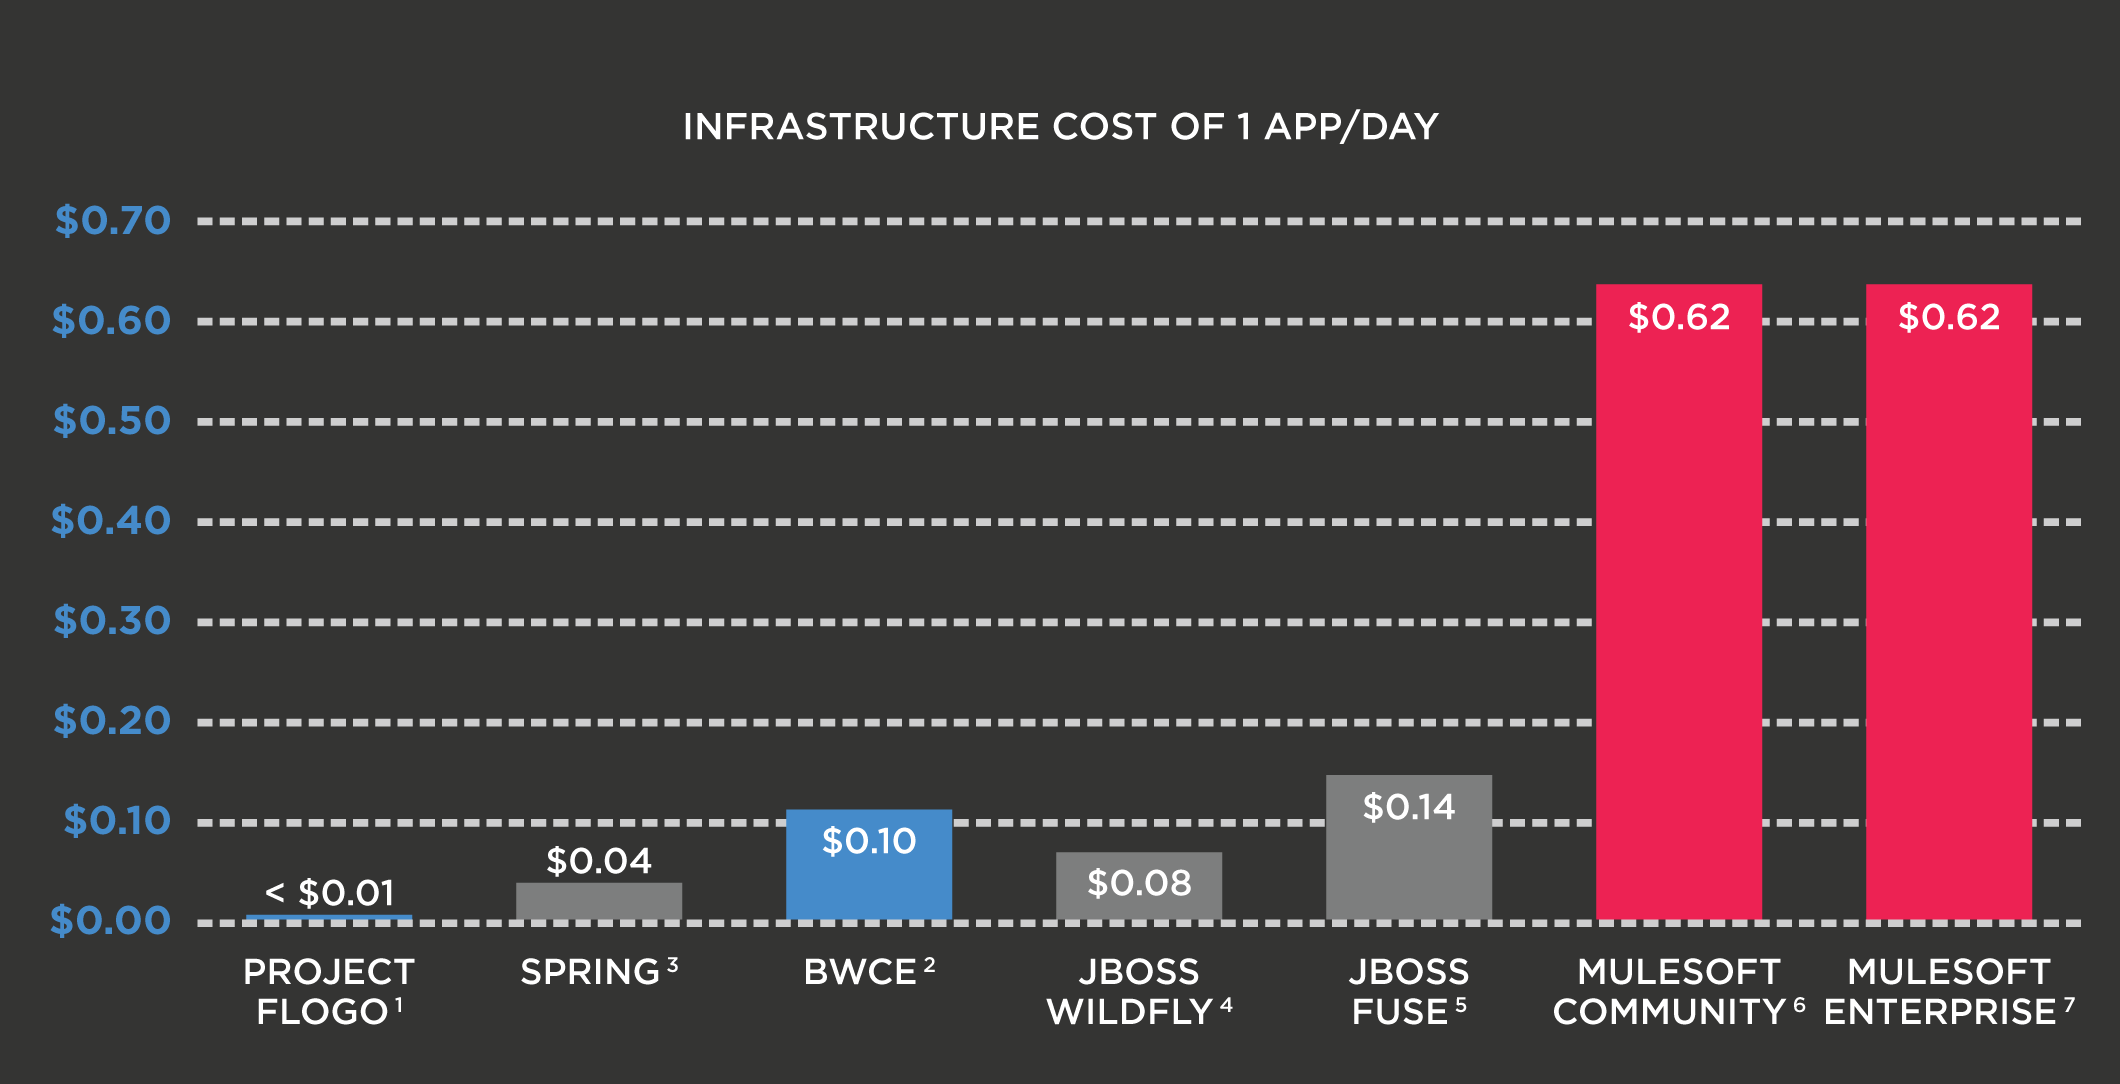 Infrastructure cost of 1 App/day